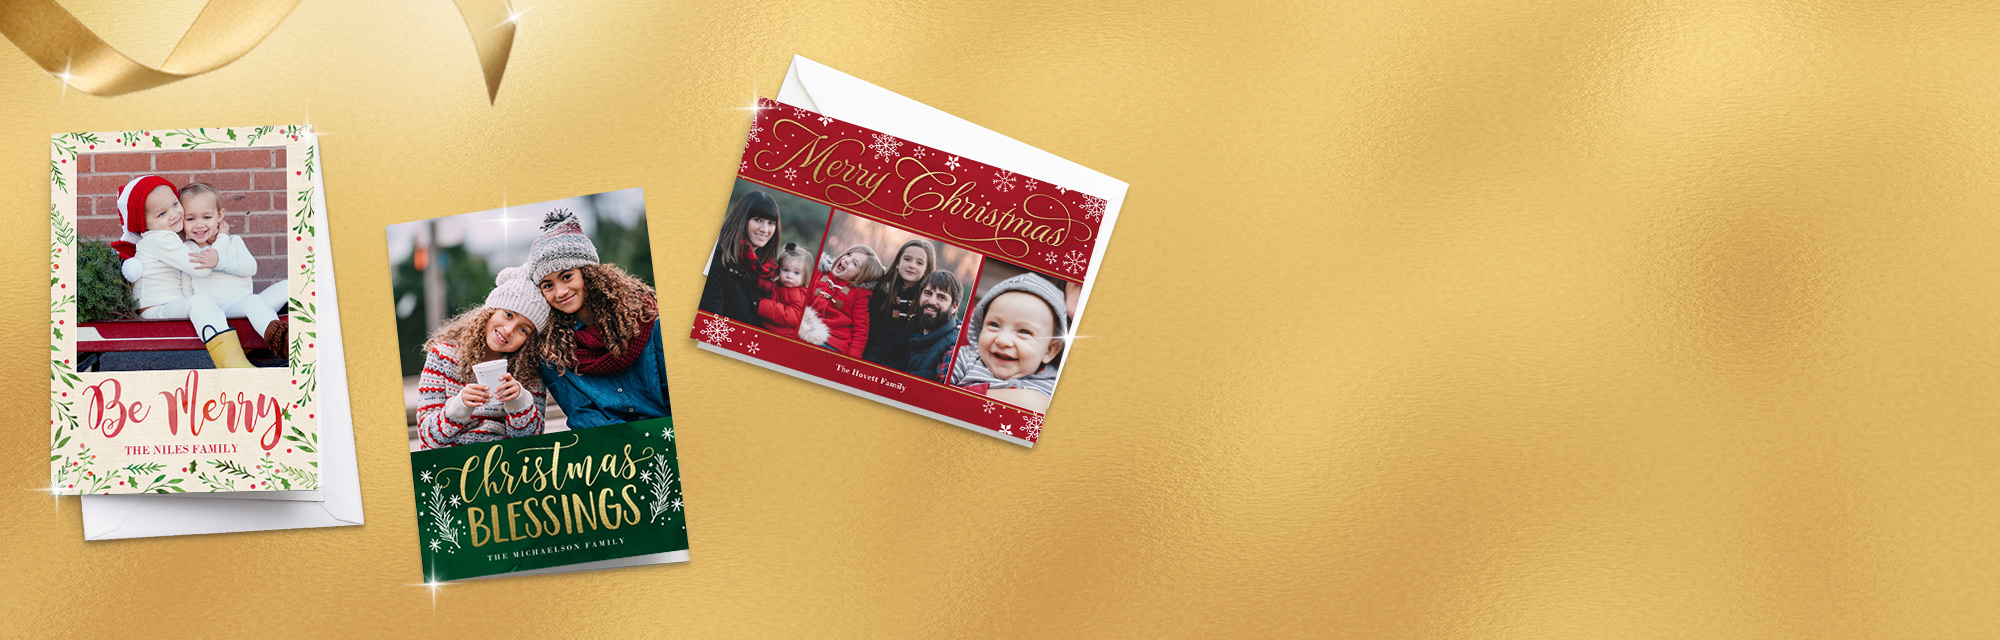 Personalised Photo Cards : Share your favourite snaps with loved one's and send them a personalised photo card. We have cards for all occasions and events including birthdays, weddings and new baby's.